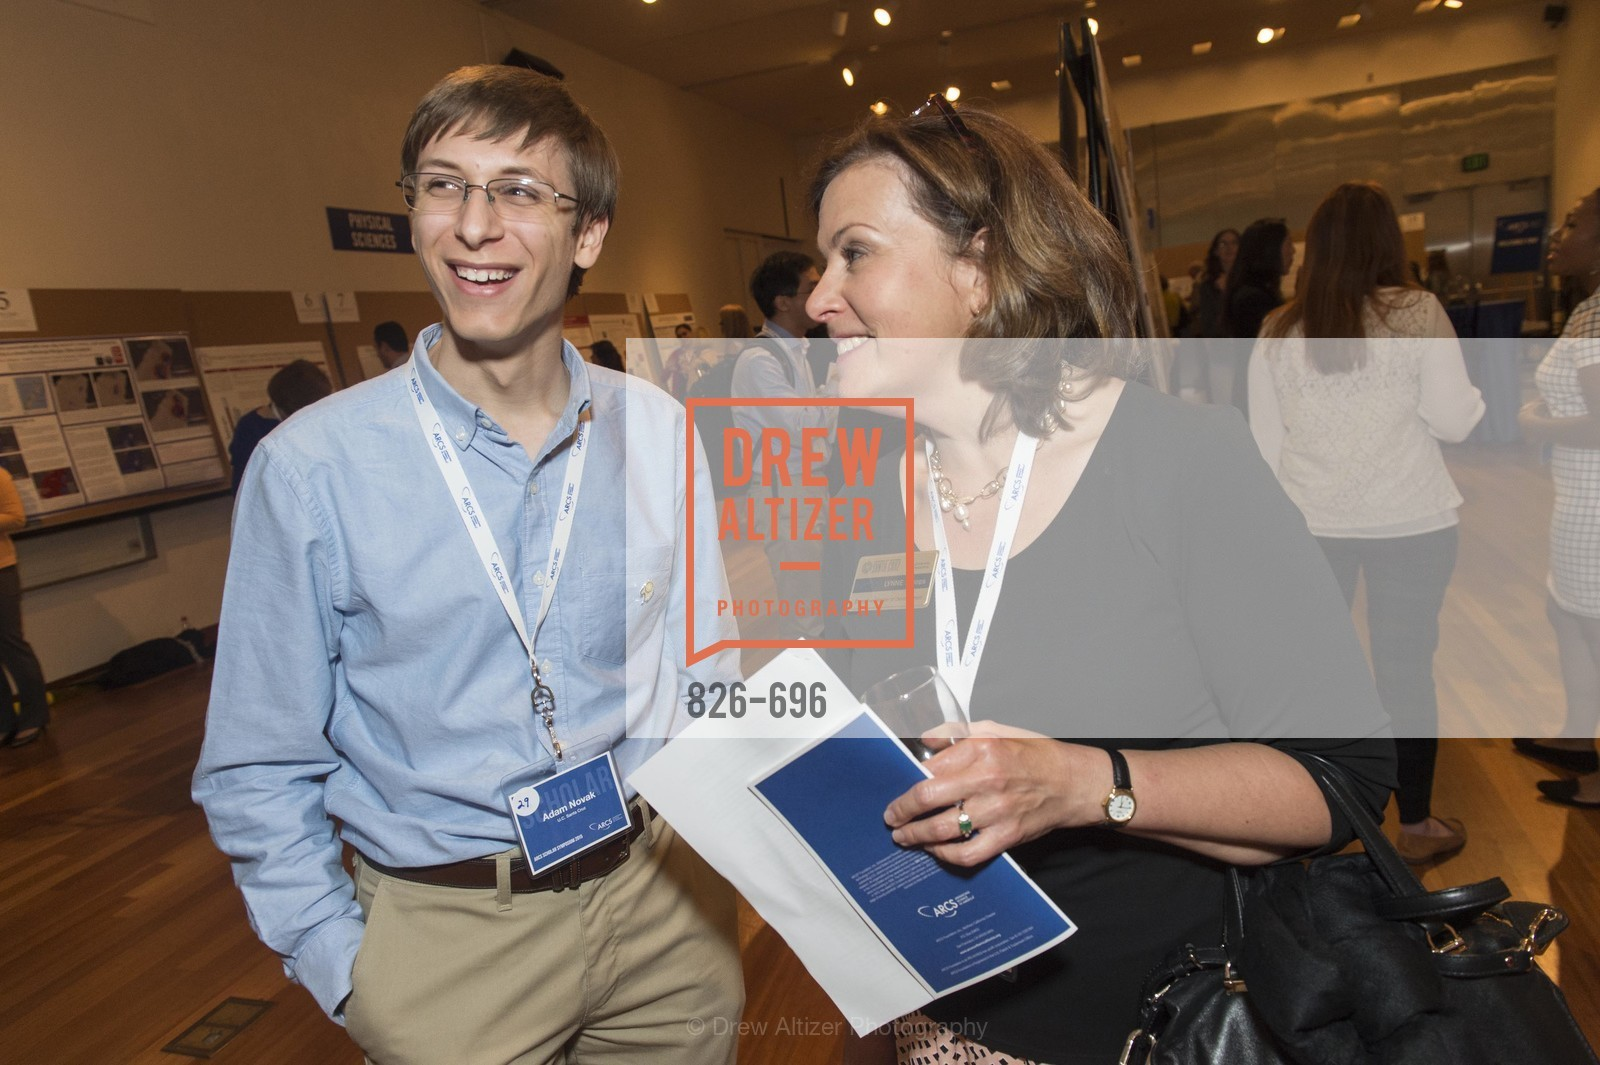 Adam Novak, Lynne Stoops, ARCS FOUNDATION Scholar Symposium, US, May 5th, 2015,Drew Altizer, Drew Altizer Photography, full-service agency, private events, San Francisco photographer, photographer california